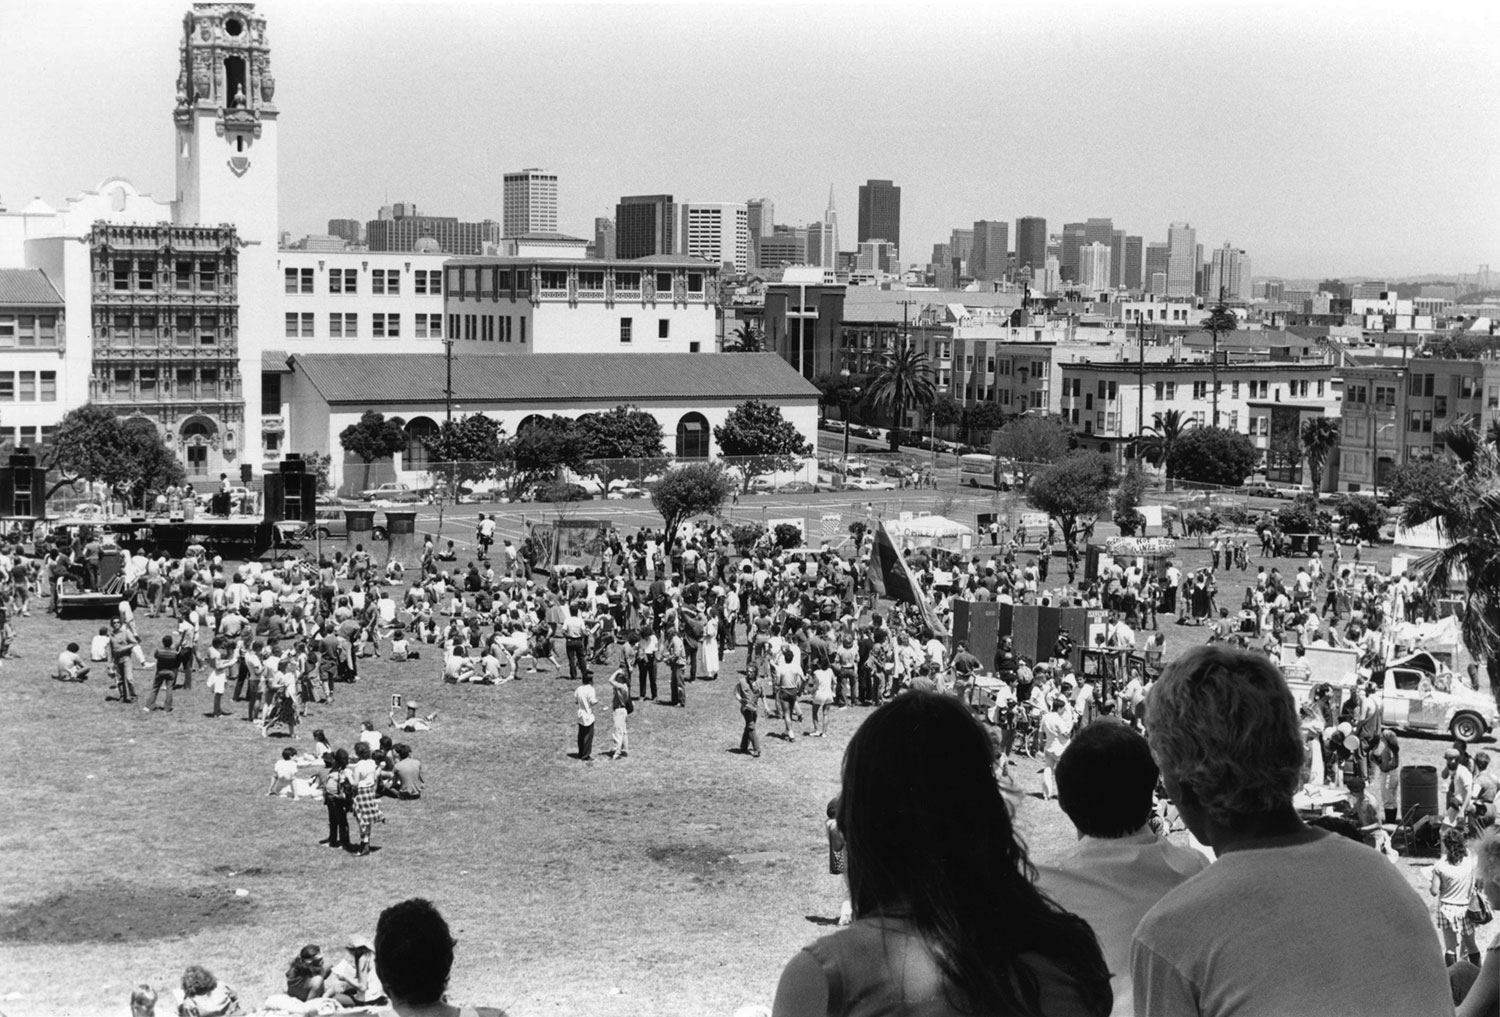 The End of the World's Fair, May 12, 1984 Mission Dolores Park